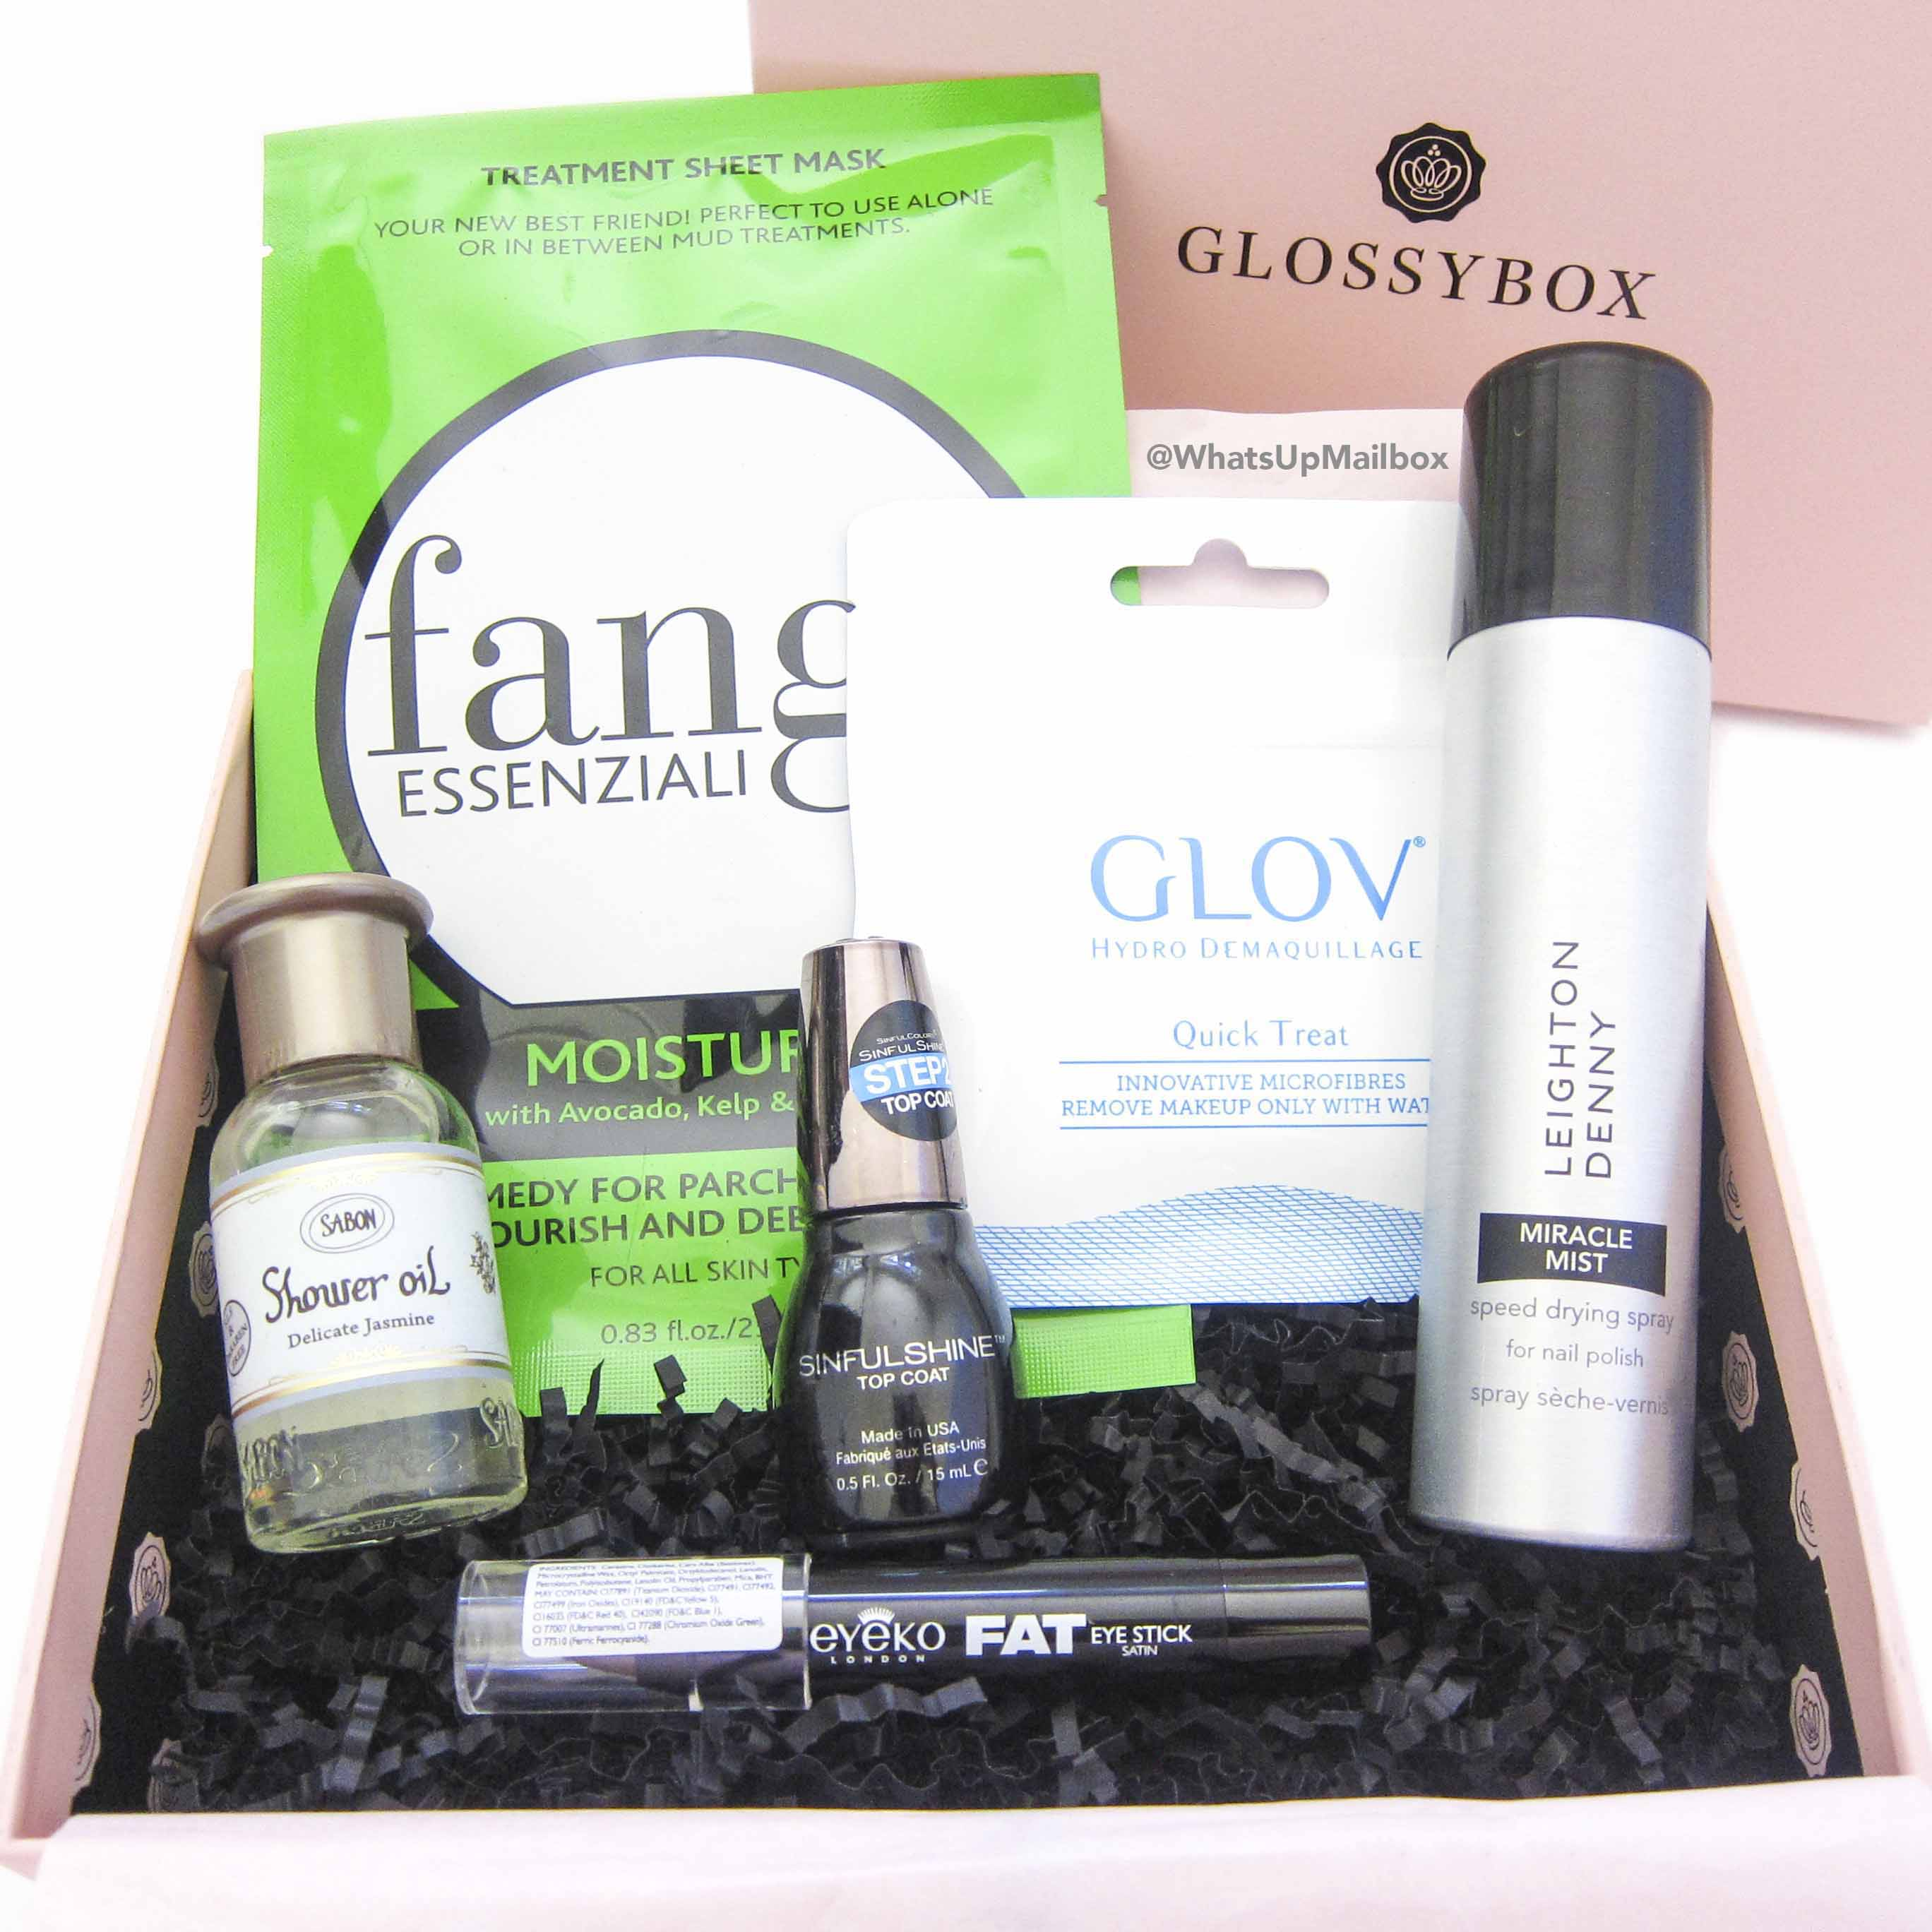 Glossybox July 2016 Items